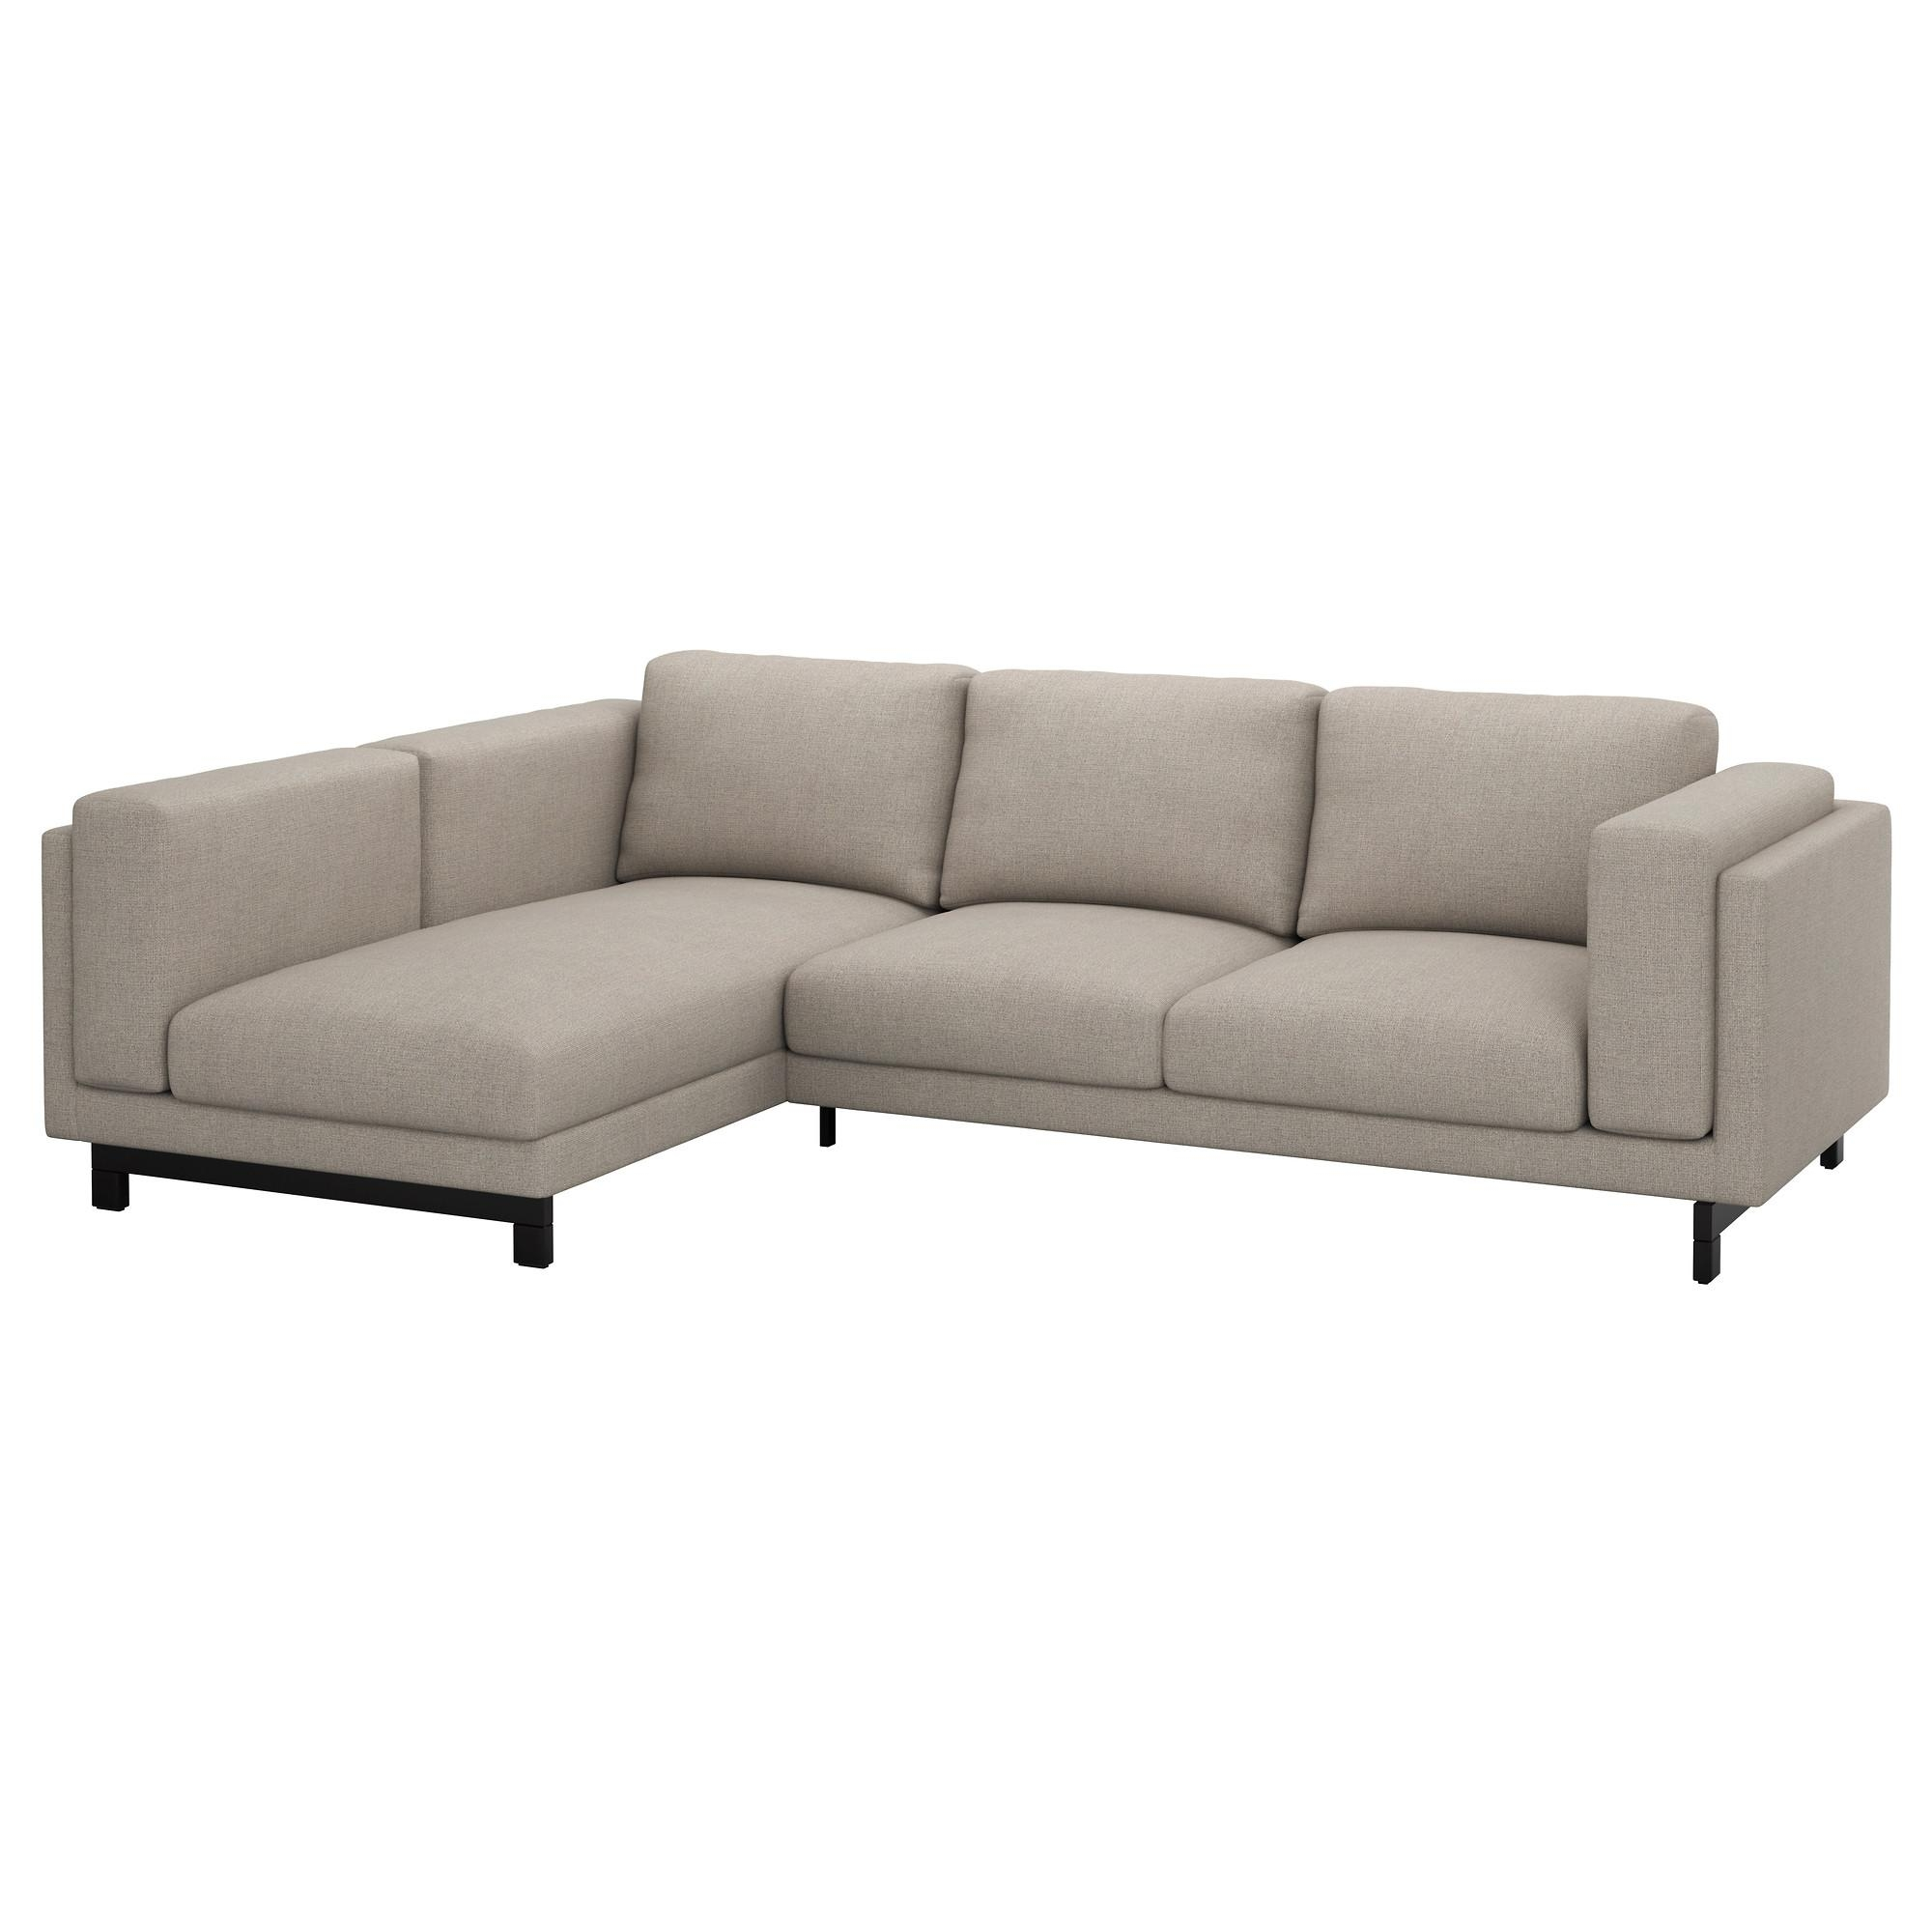 Nockeby Two Seat Sofa W Chaise Longue Left Tenö Light Grey/wood – Ikea Throughout Ikea Two Seater Sofas (View 14 of 20)